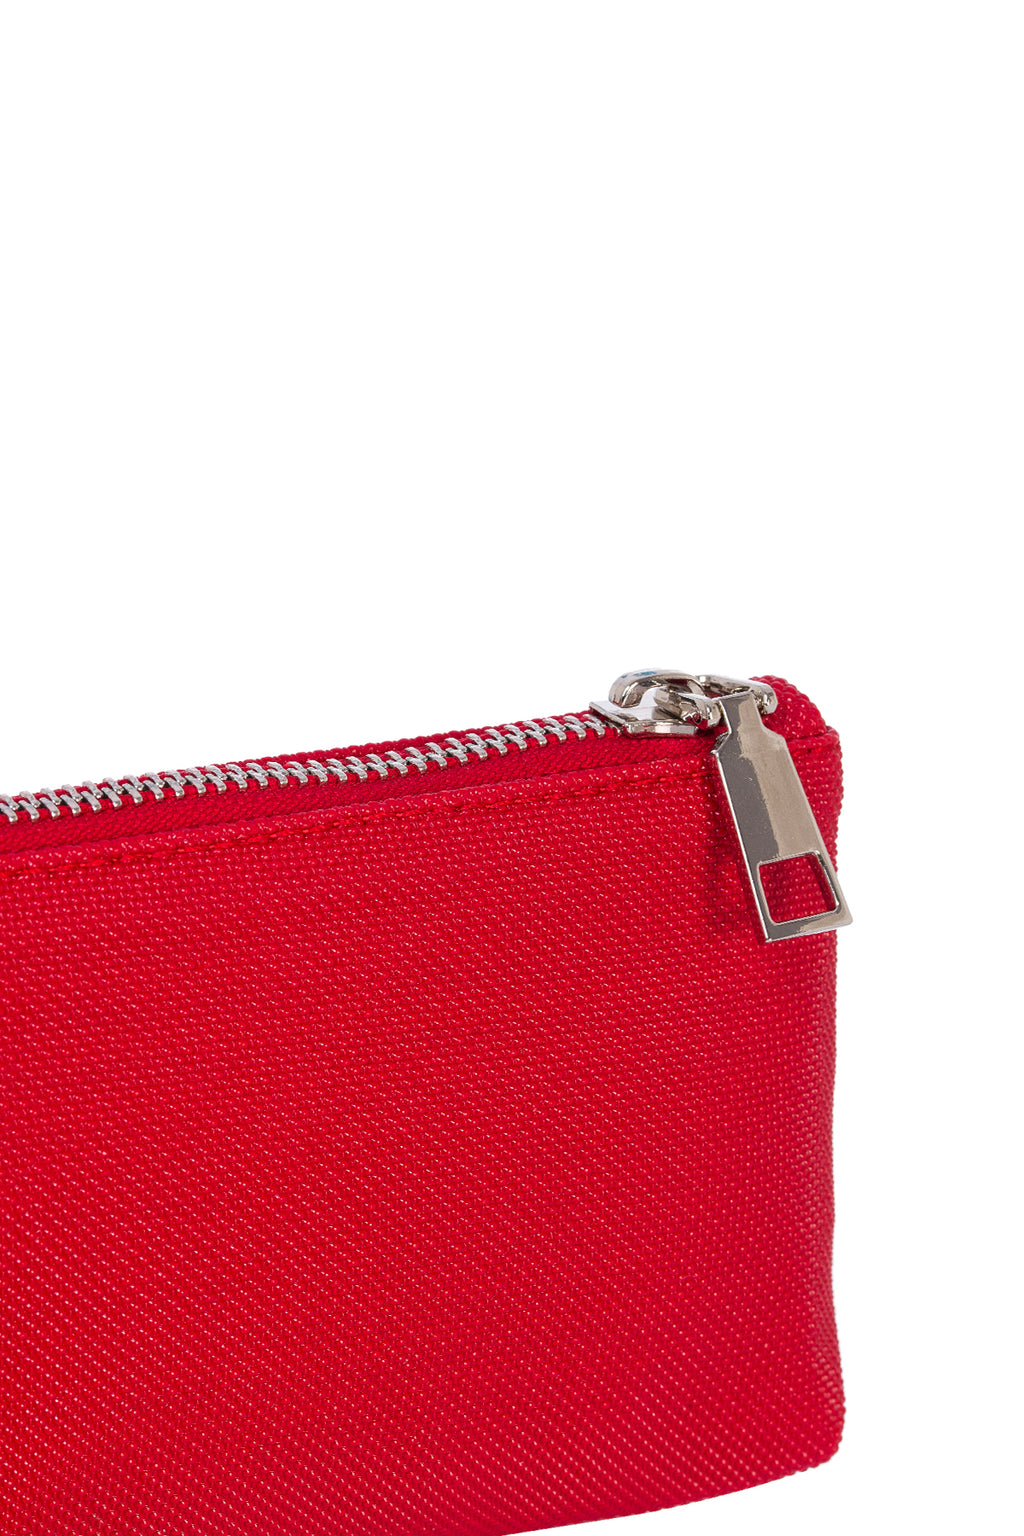 U-hide <br> Inner Pouch <br> Small - RED